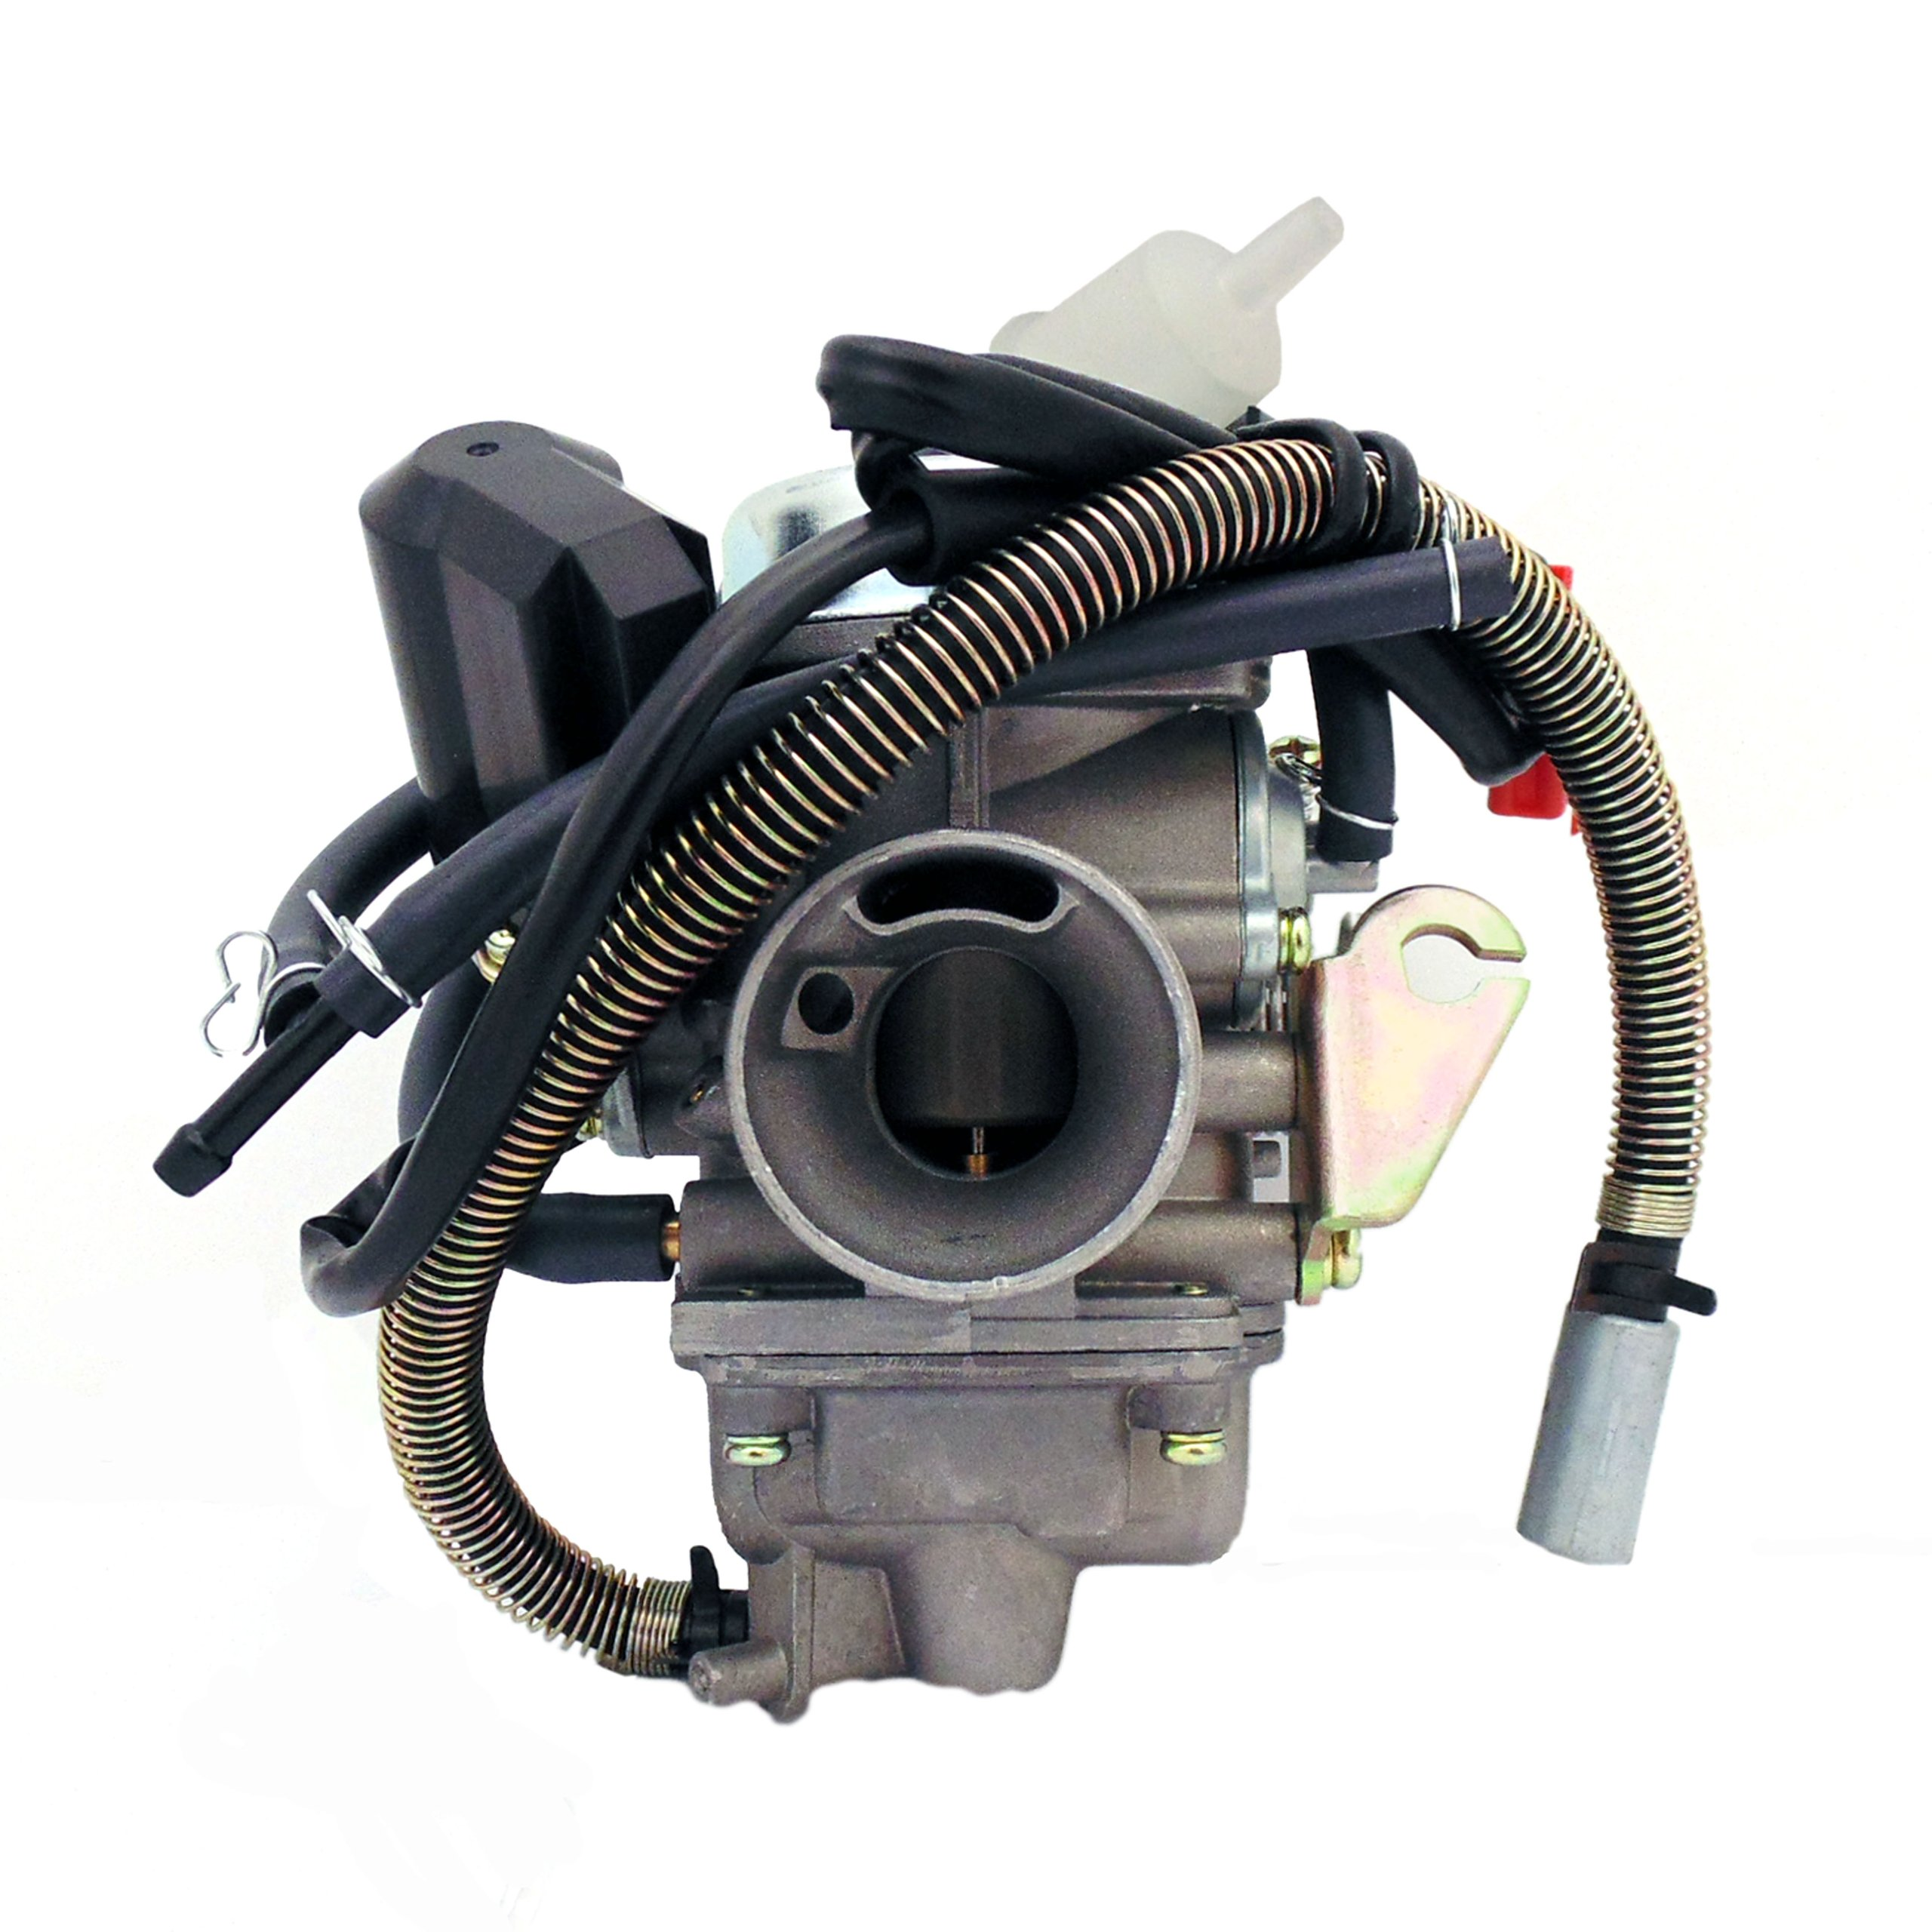 MMG Carburetor Assy 150cc 125cc 4 Stroke Electric Choke Motorcycle Scooter by MMG